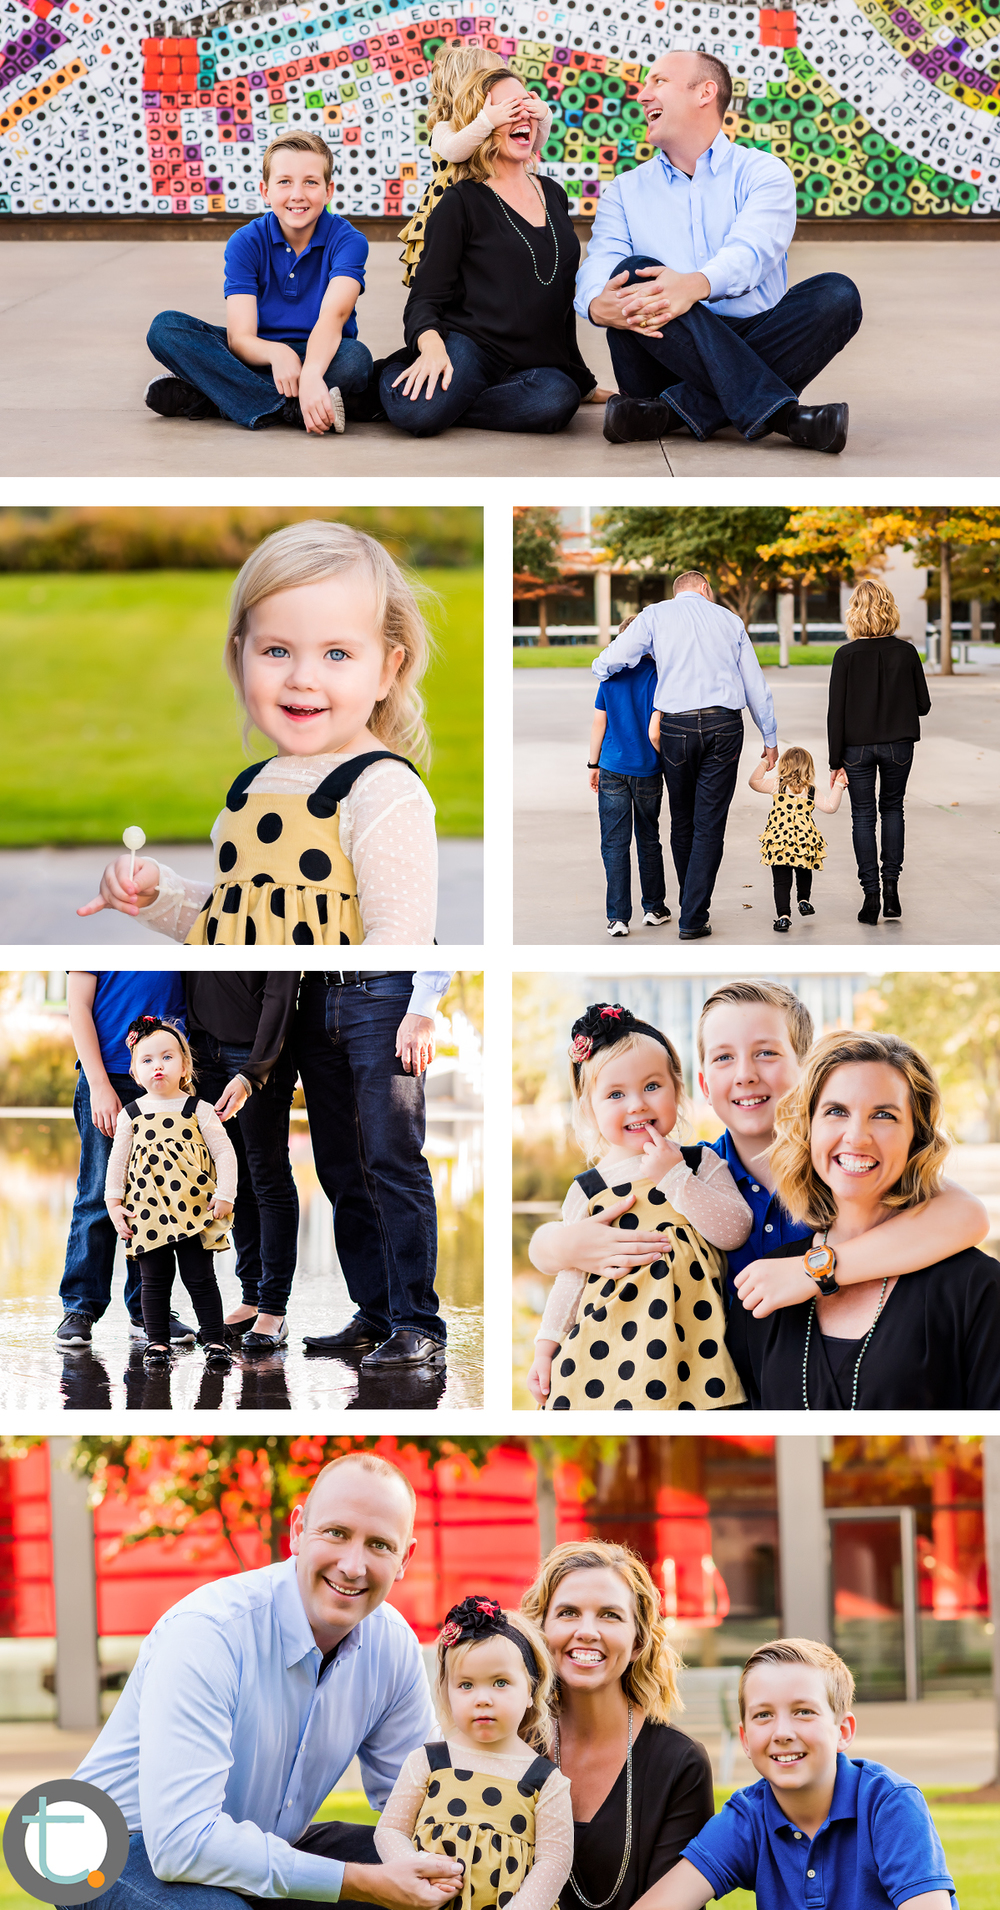 toddlergirl_tweenboy_artsdistrict_family_tracyallynphotography